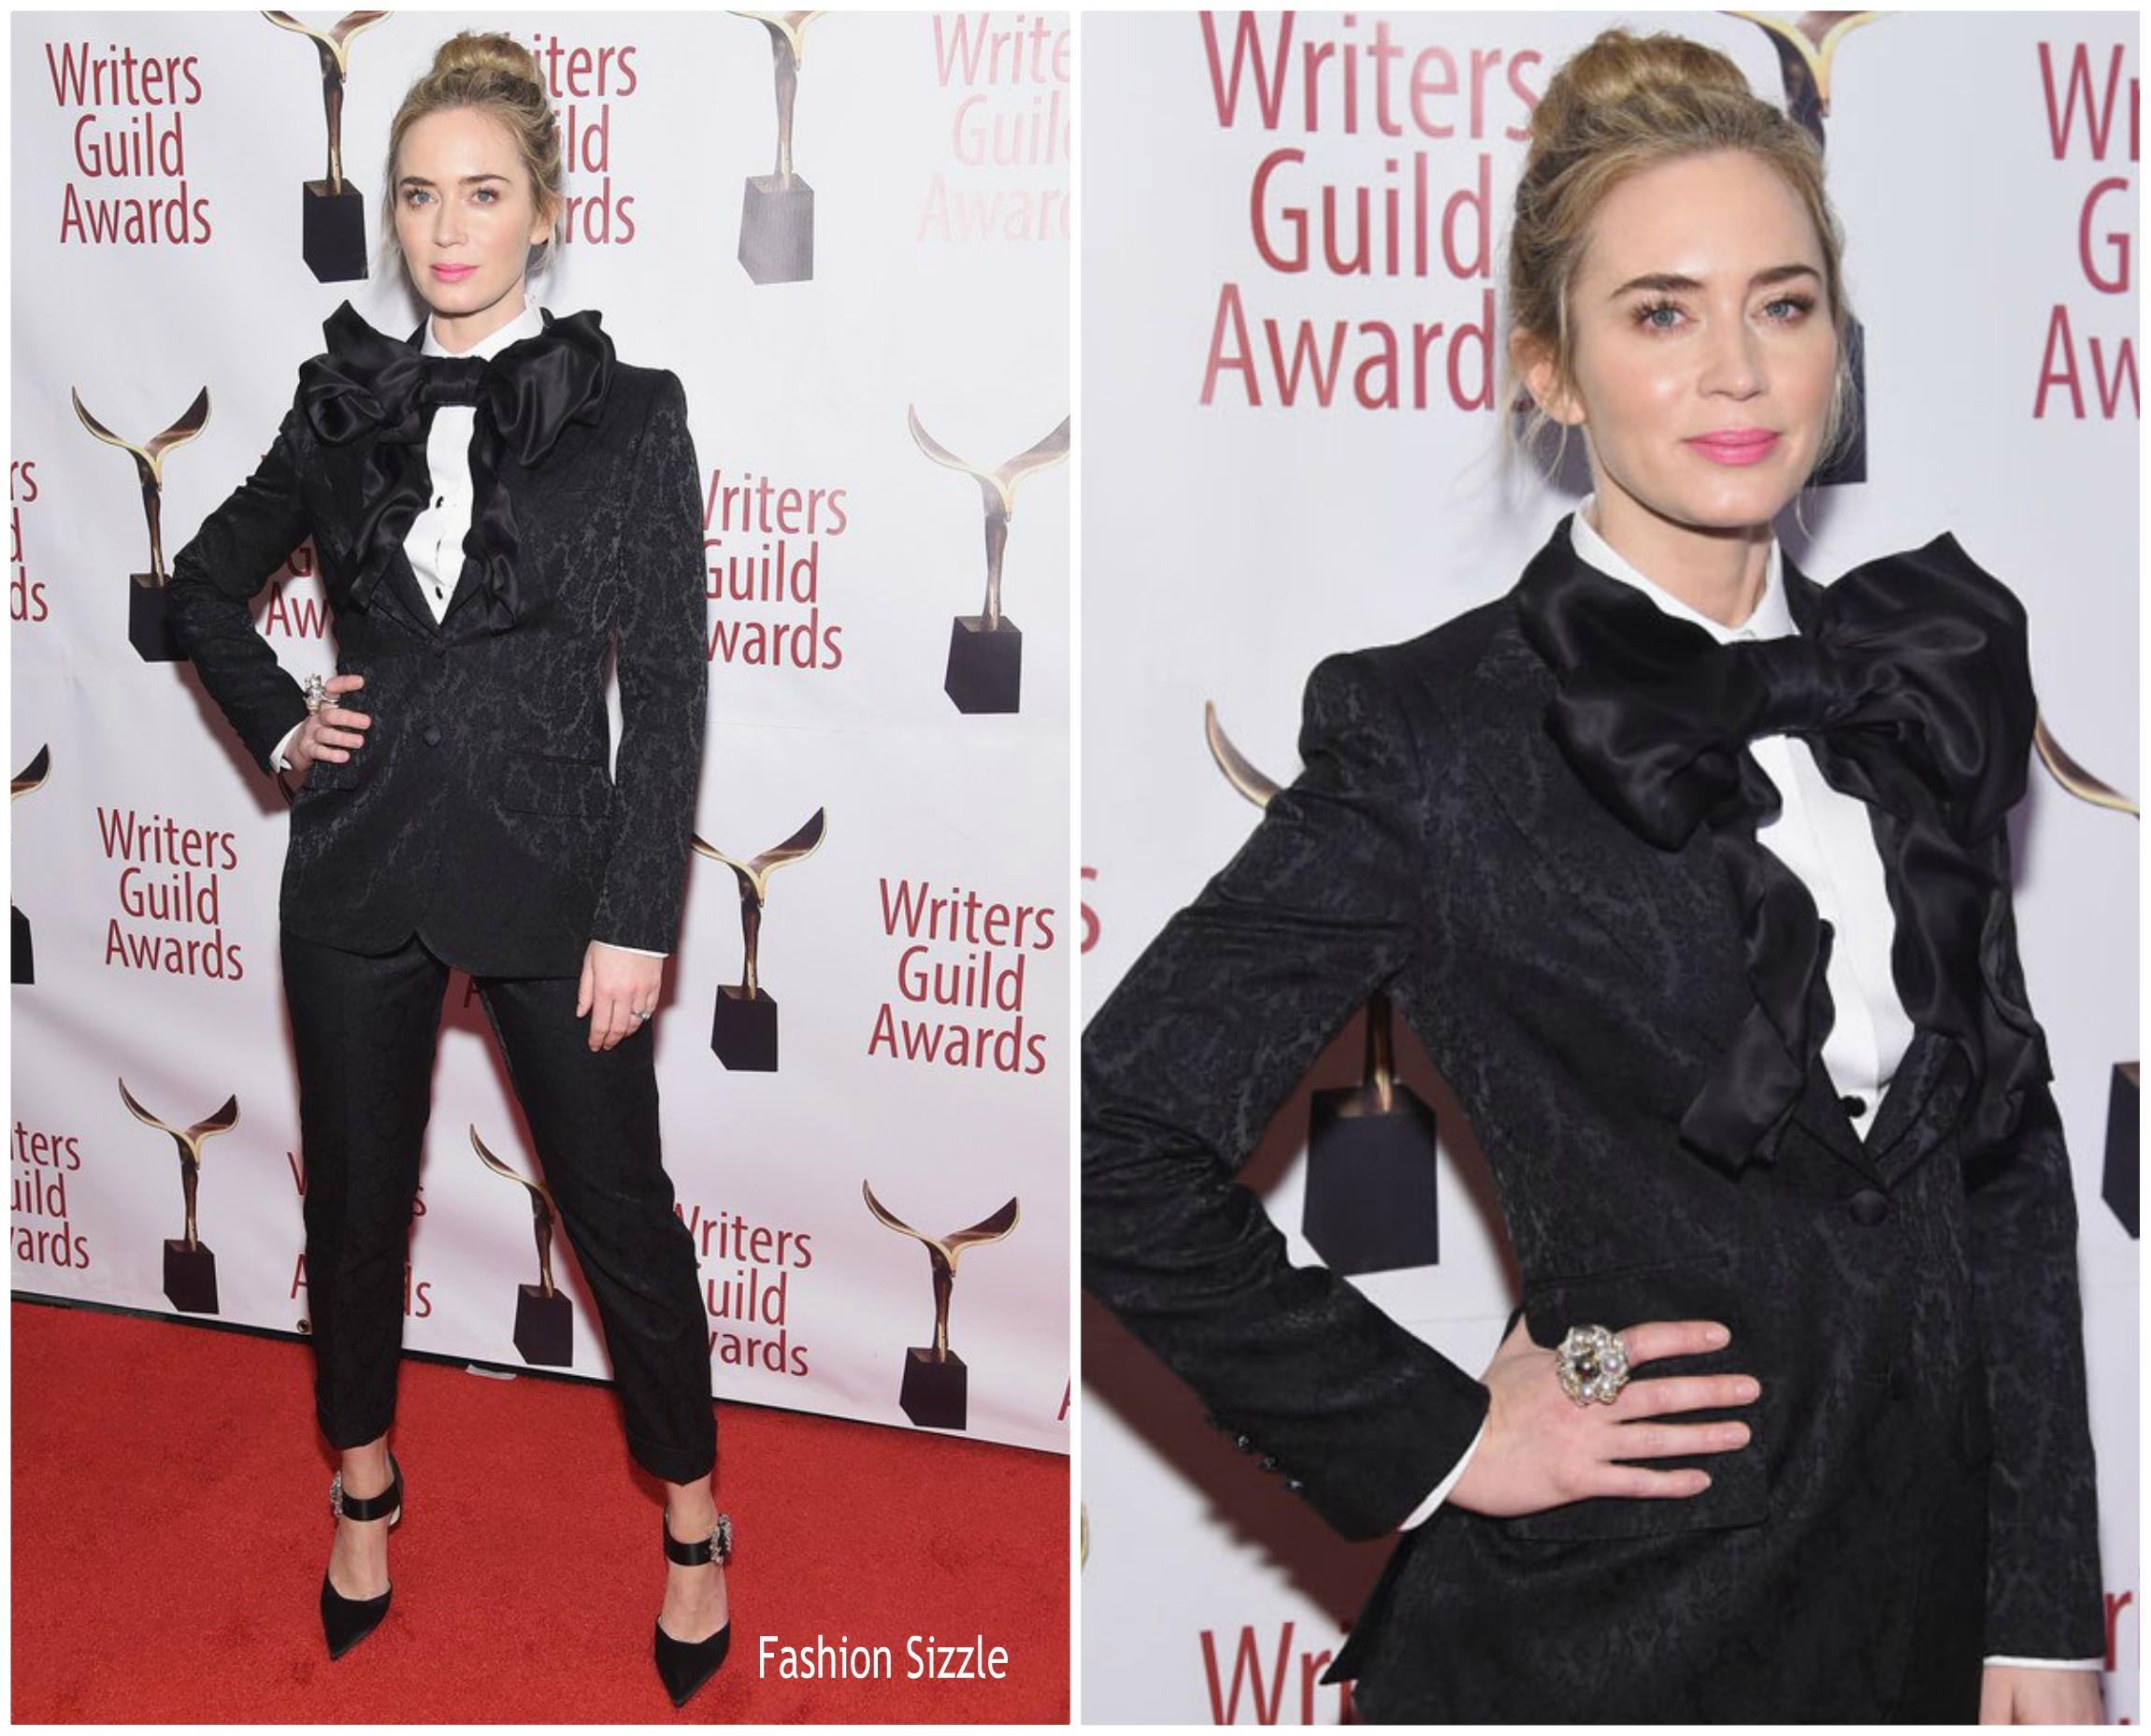 emily-blunt-in-dolce-gabbana-71st-annual-writers-guild-awards